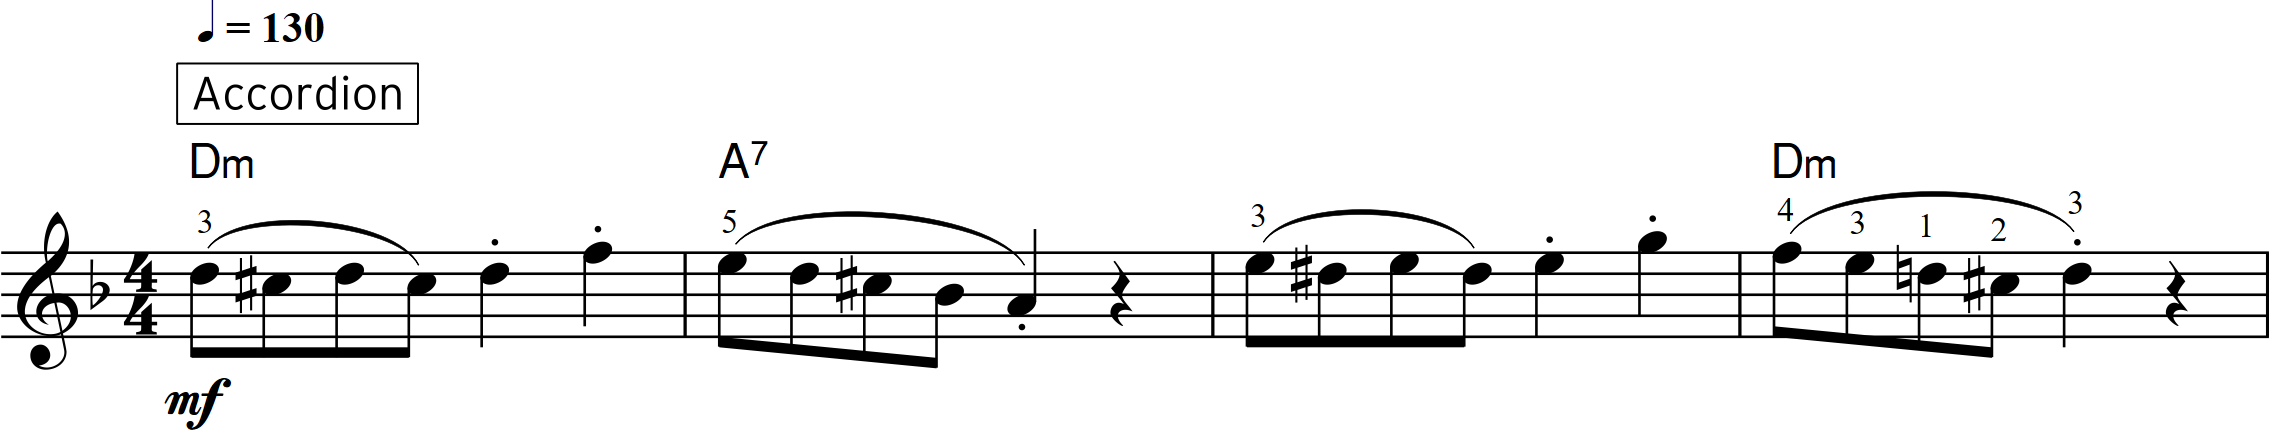 Fig 5 Whirling Dervishes first 4 bars